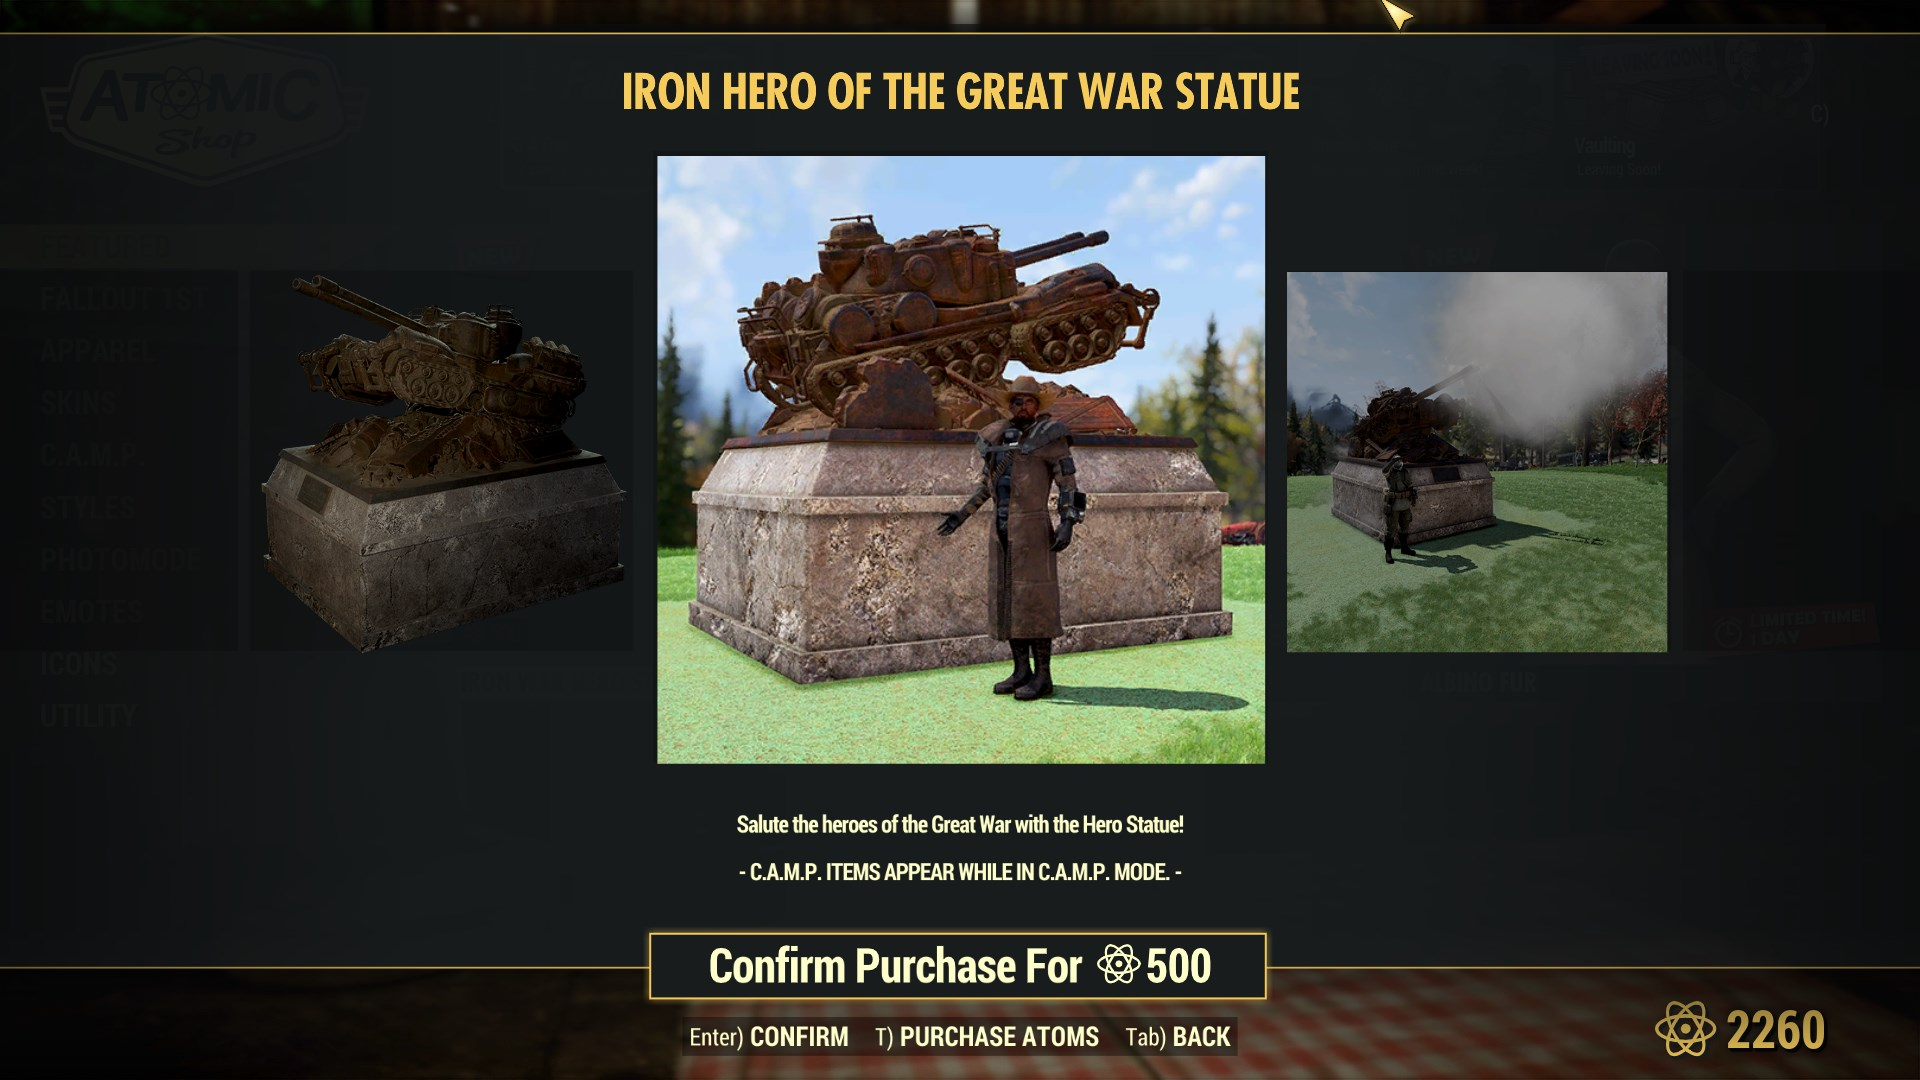 Iron Hero of the Great War Statue